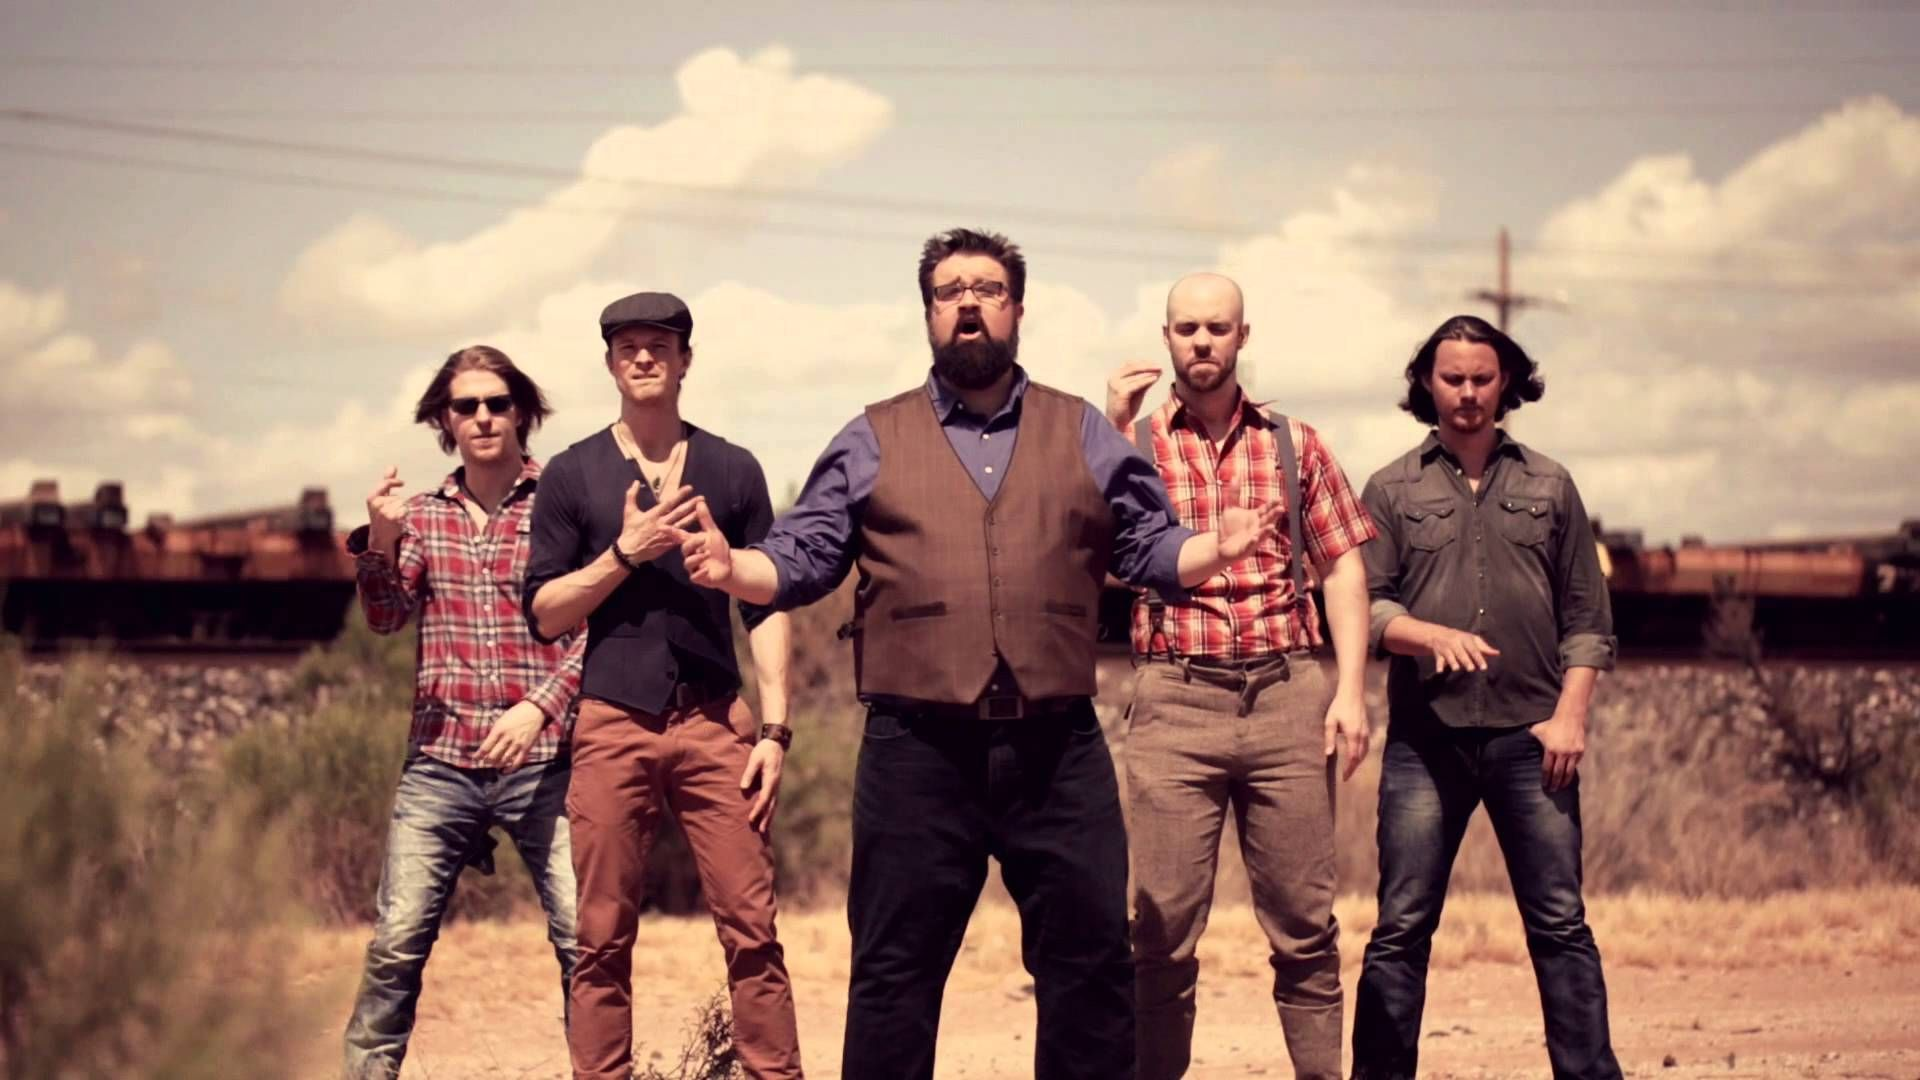 Wagon Wheel (Song of The South) Old Crowe Medicine Show